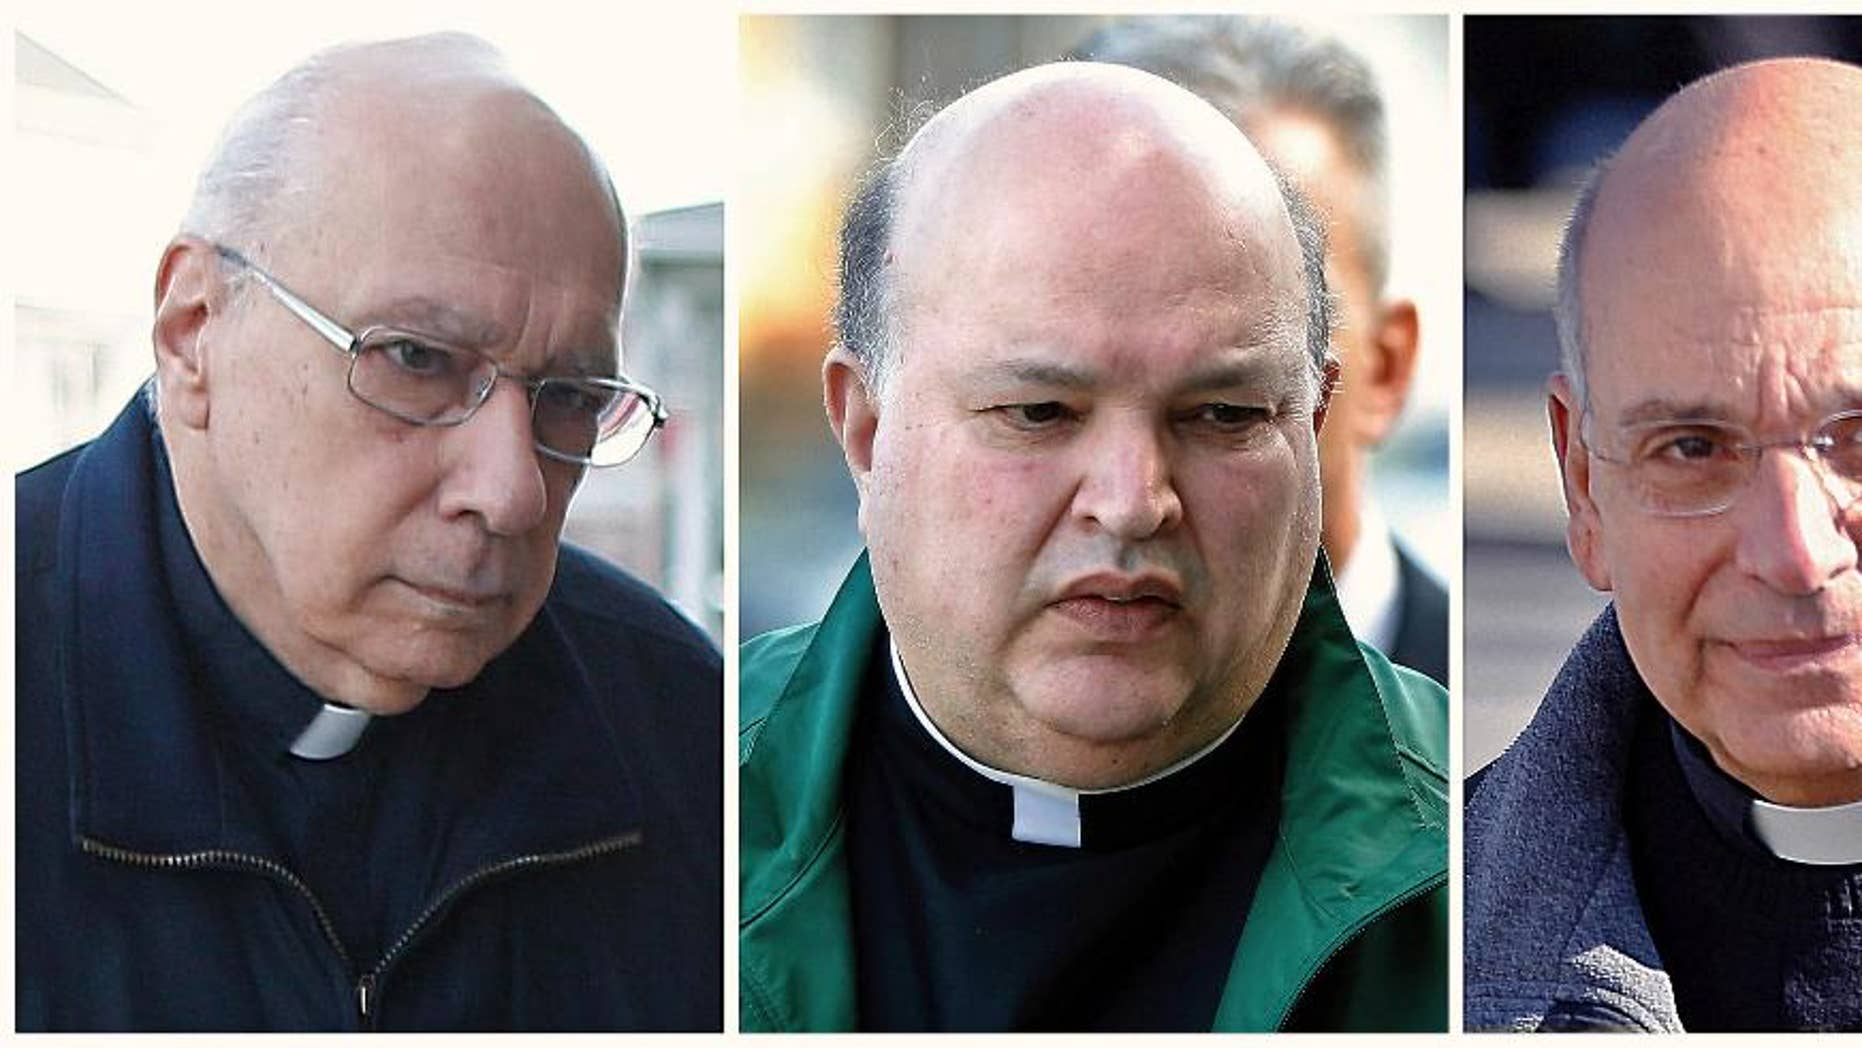 FILE - This combination of file photos from March 18, 2016, shows Giles Schinelli, left, Anthony Criscitelli, center, and Robert D'Aversa, right, when the three Franciscan friars were arraigned on charges of child endangerment and criminal conspiracy at a district magistrate in Hollidaysburg, Pa. Blair County, Pa., Judge Jolene Kopriva scheduled a Thursday, April 27, 2017, hearing after attorneys for Schinelli, Criscitelli and D'Aversa asked for the dismissal of charges that the friars didn't properly supervise a suspected sexual predator accused of molesting more than 100 children, most at a Pennsylvania high school, the Altoona Mirror reported Thursday, April 20. (AP Photo/Keith Srakocic, File)